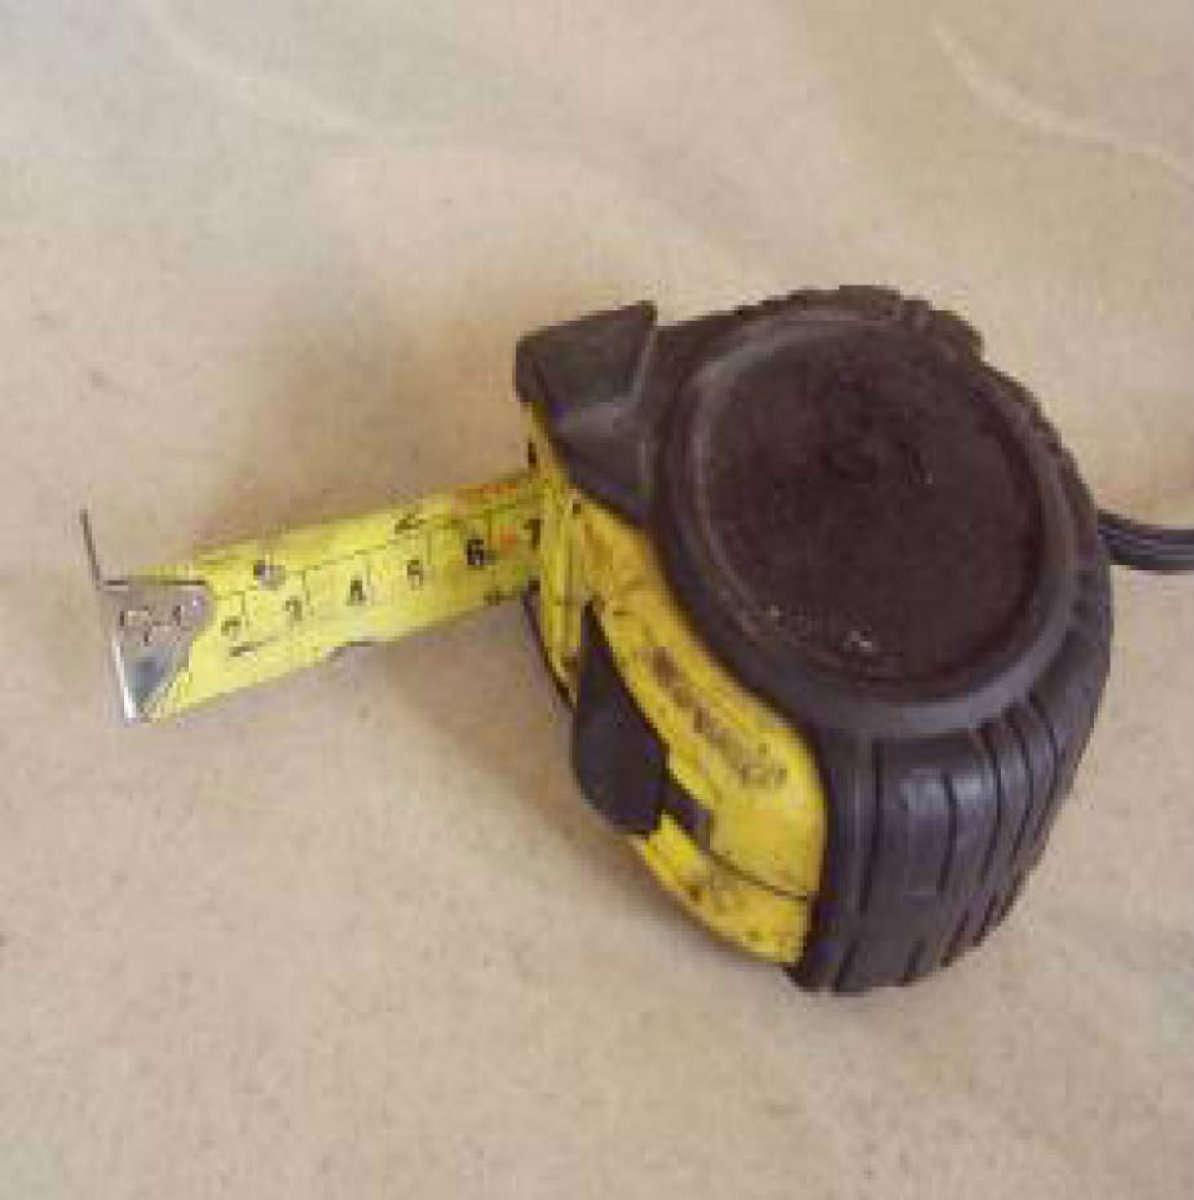 7.5 M tape measure7.5 米卷尺